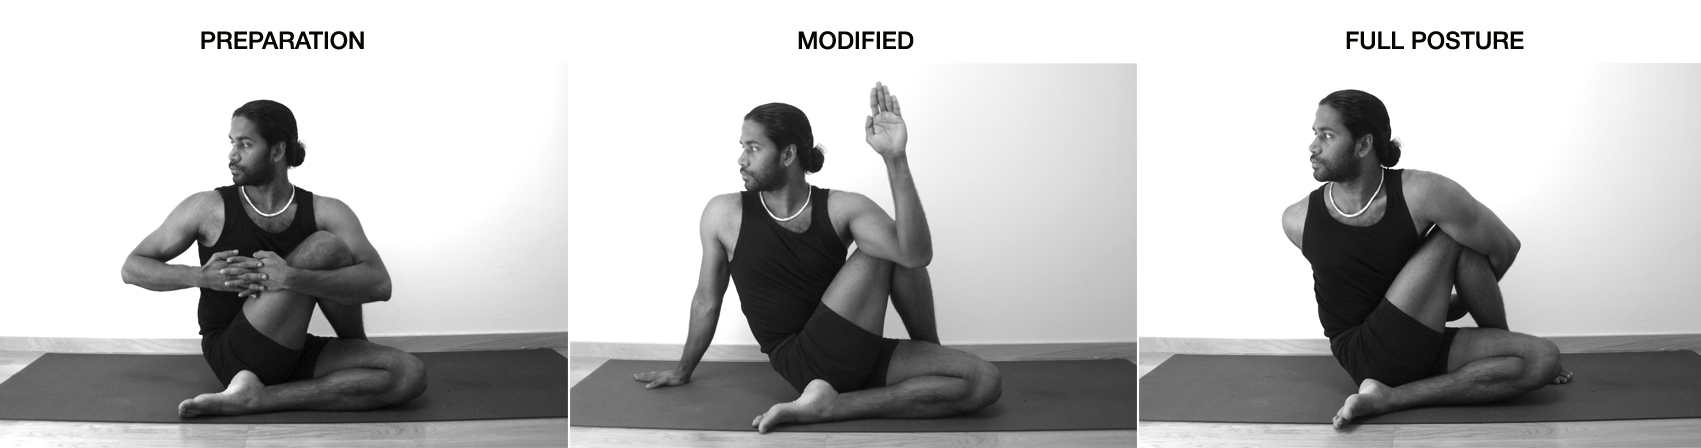 Ardha matsyendrasana half lord of the fishes pose for Half lord of the fishes